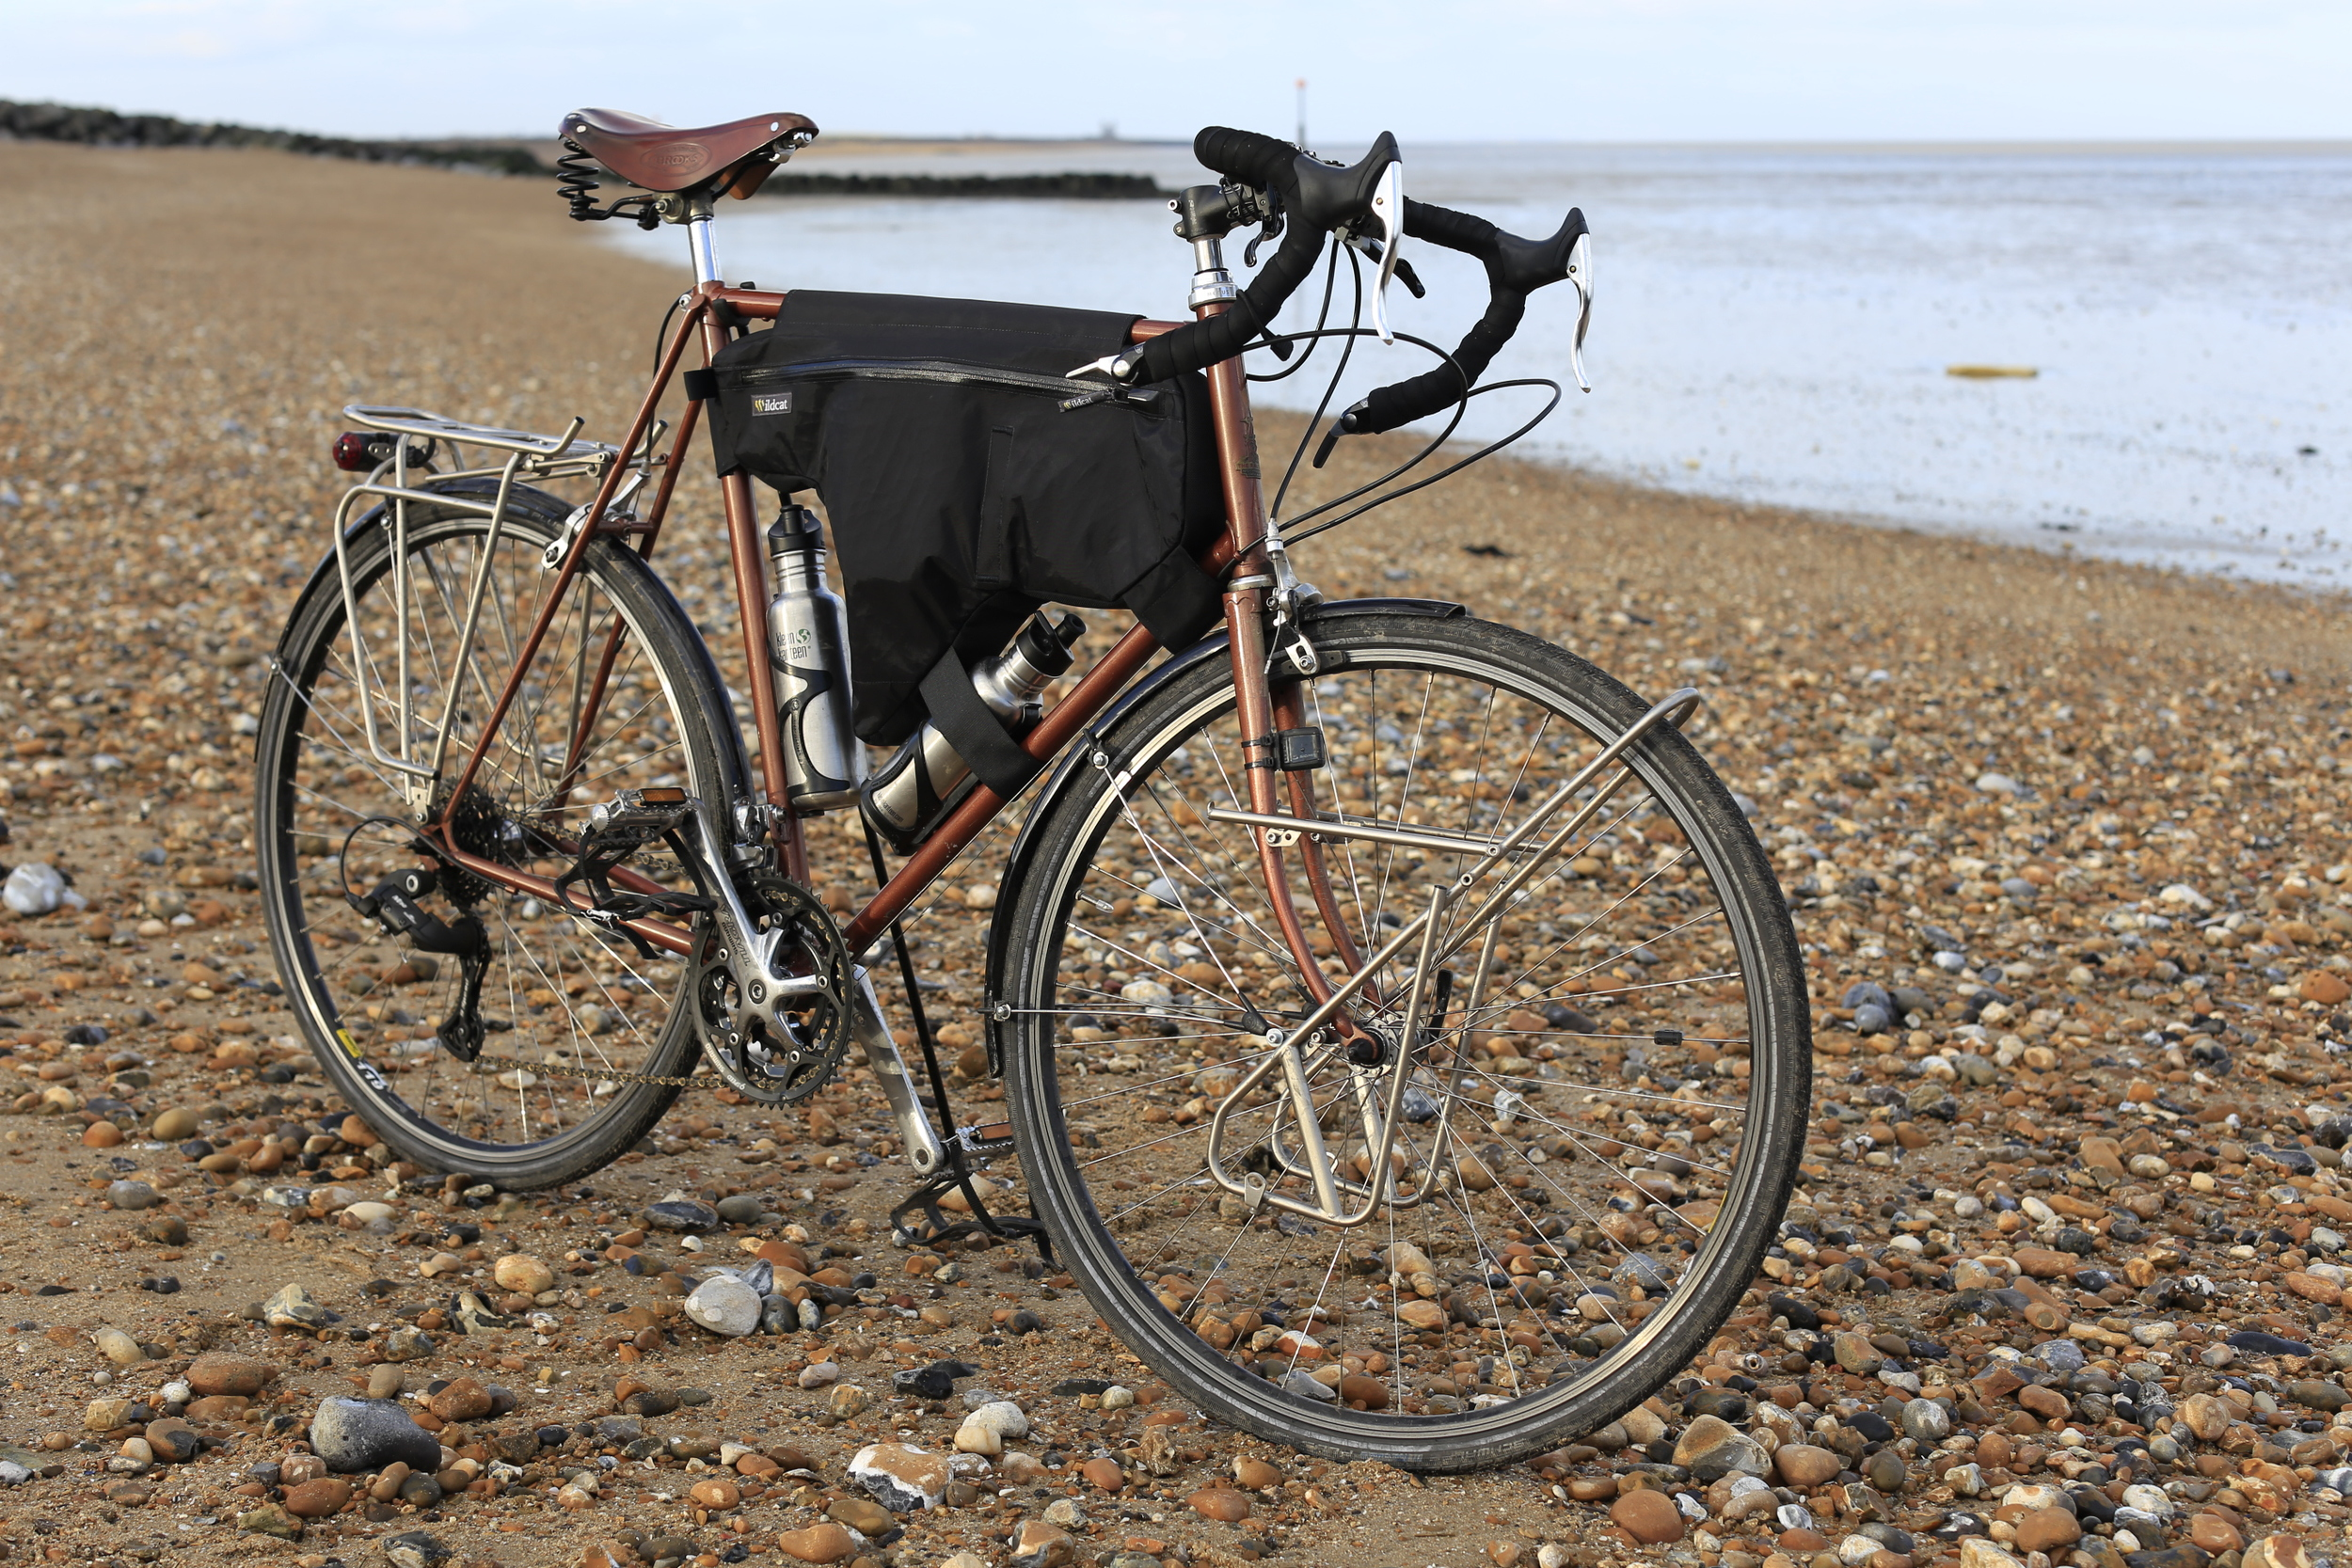 raleigh tourer, Wildcat, frame bag, beach, touring, bicycle touring, bicycle touring apocalypse, review, blog, canon 6d